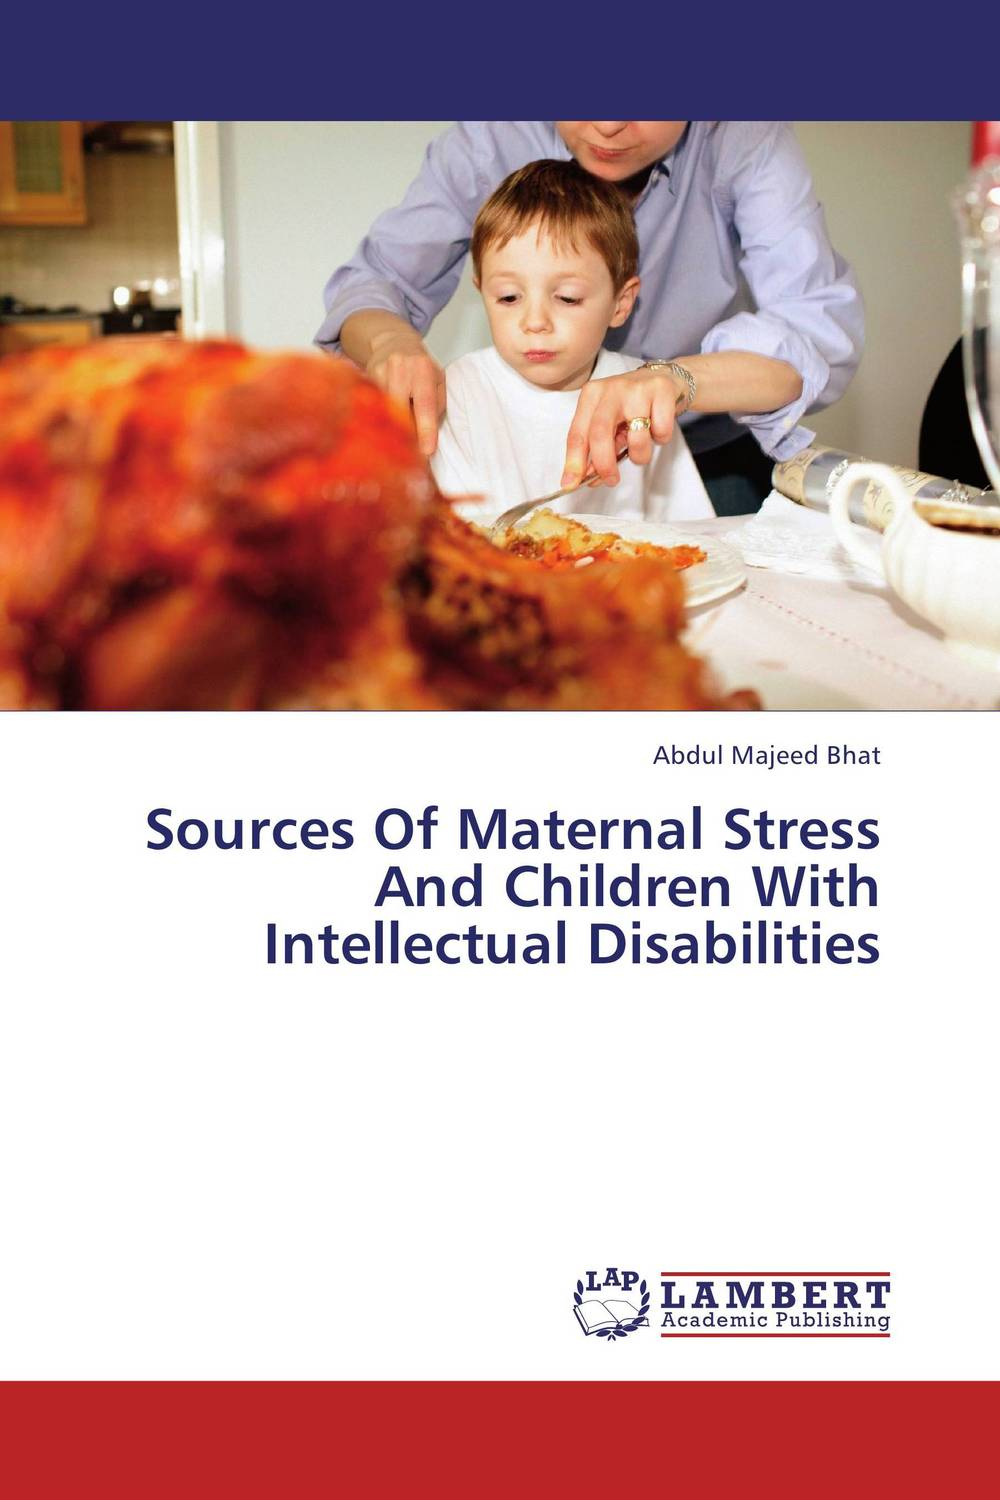 Sources Of Maternal Stress And Children With Intellectual Disabilities parenting stress of mother and relationship with children